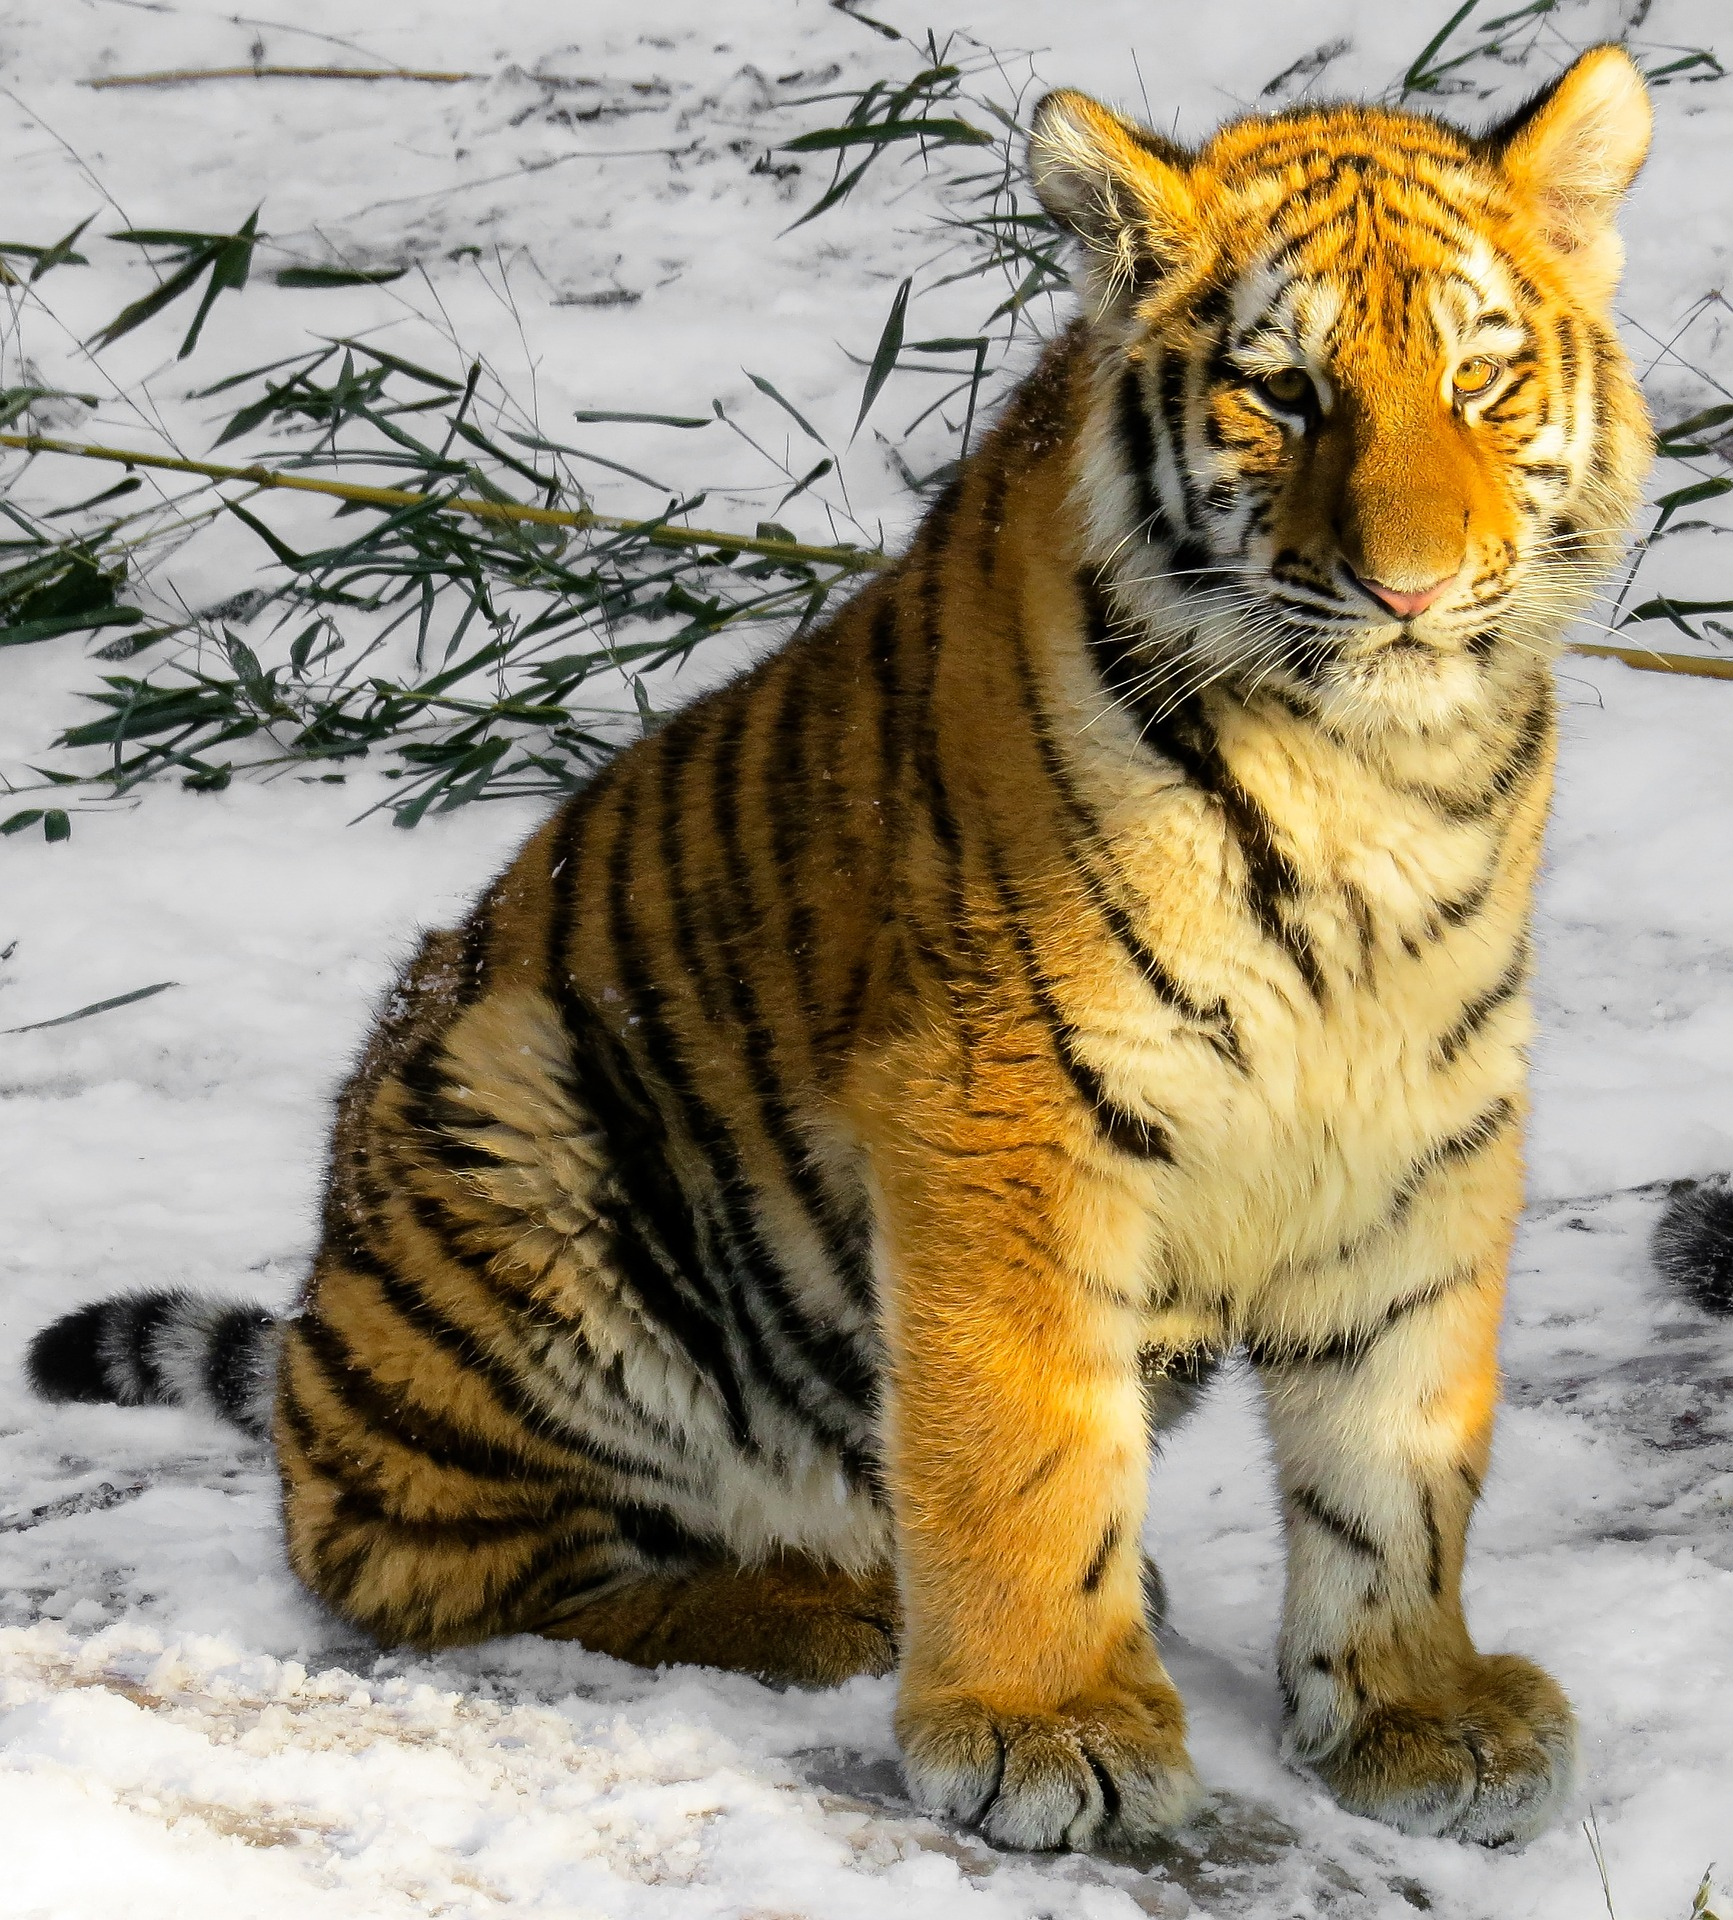 Bengal tiger photo